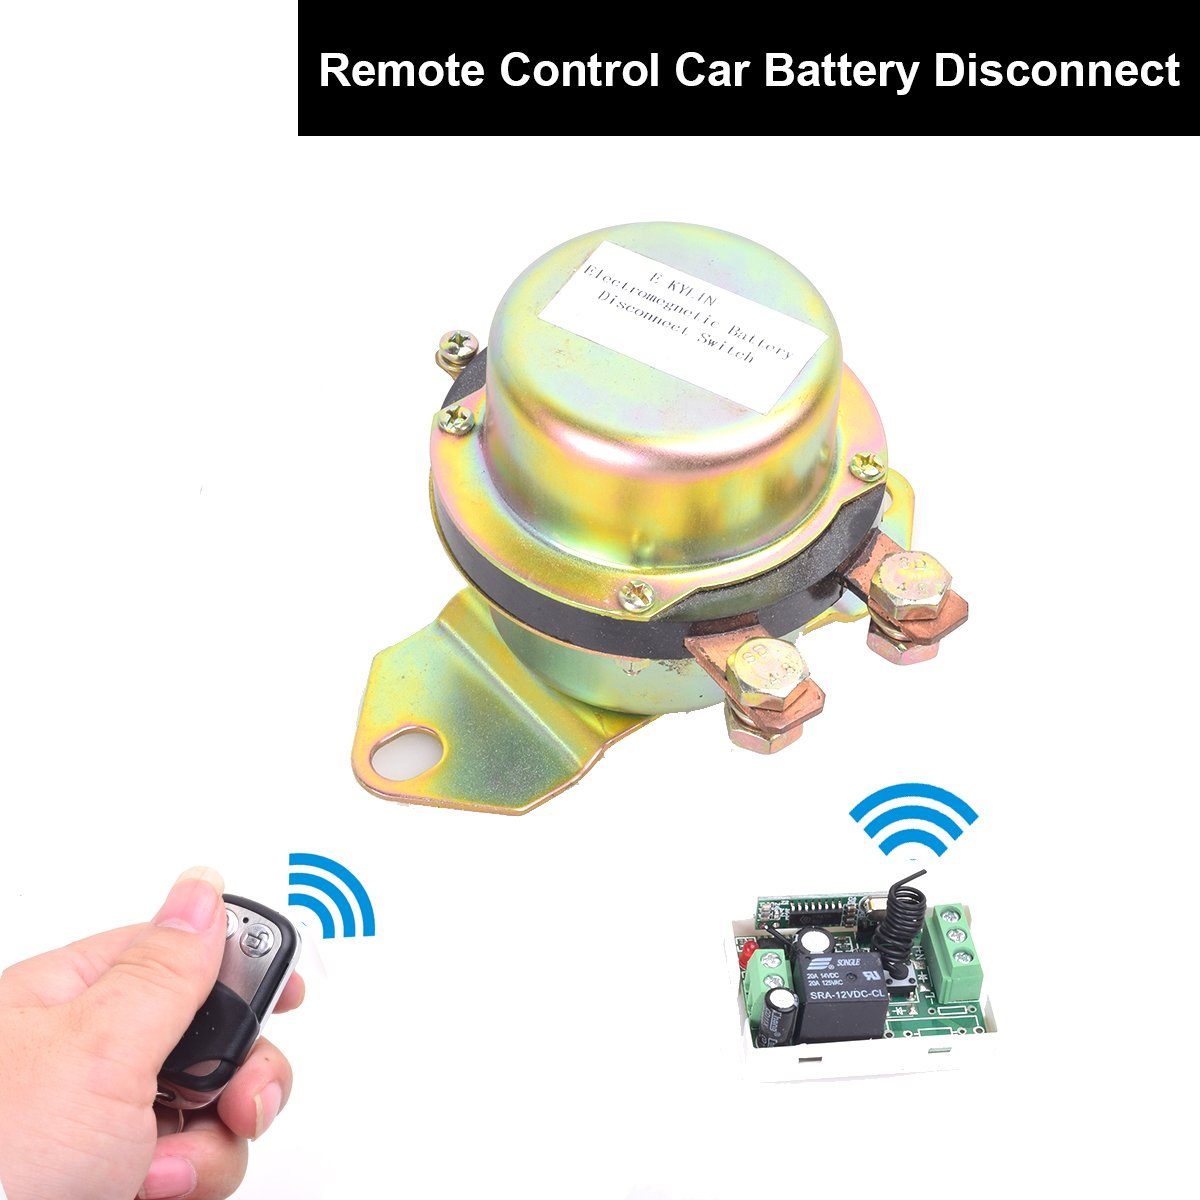 This Diagram Shows Just How Easy The Disconnect Wires Solenoid Has Car Wireless Remote Control Battery Switch Latching Relay Anti Theft E Kylin Dc 12v Electromagnetic Valve Terminal Master